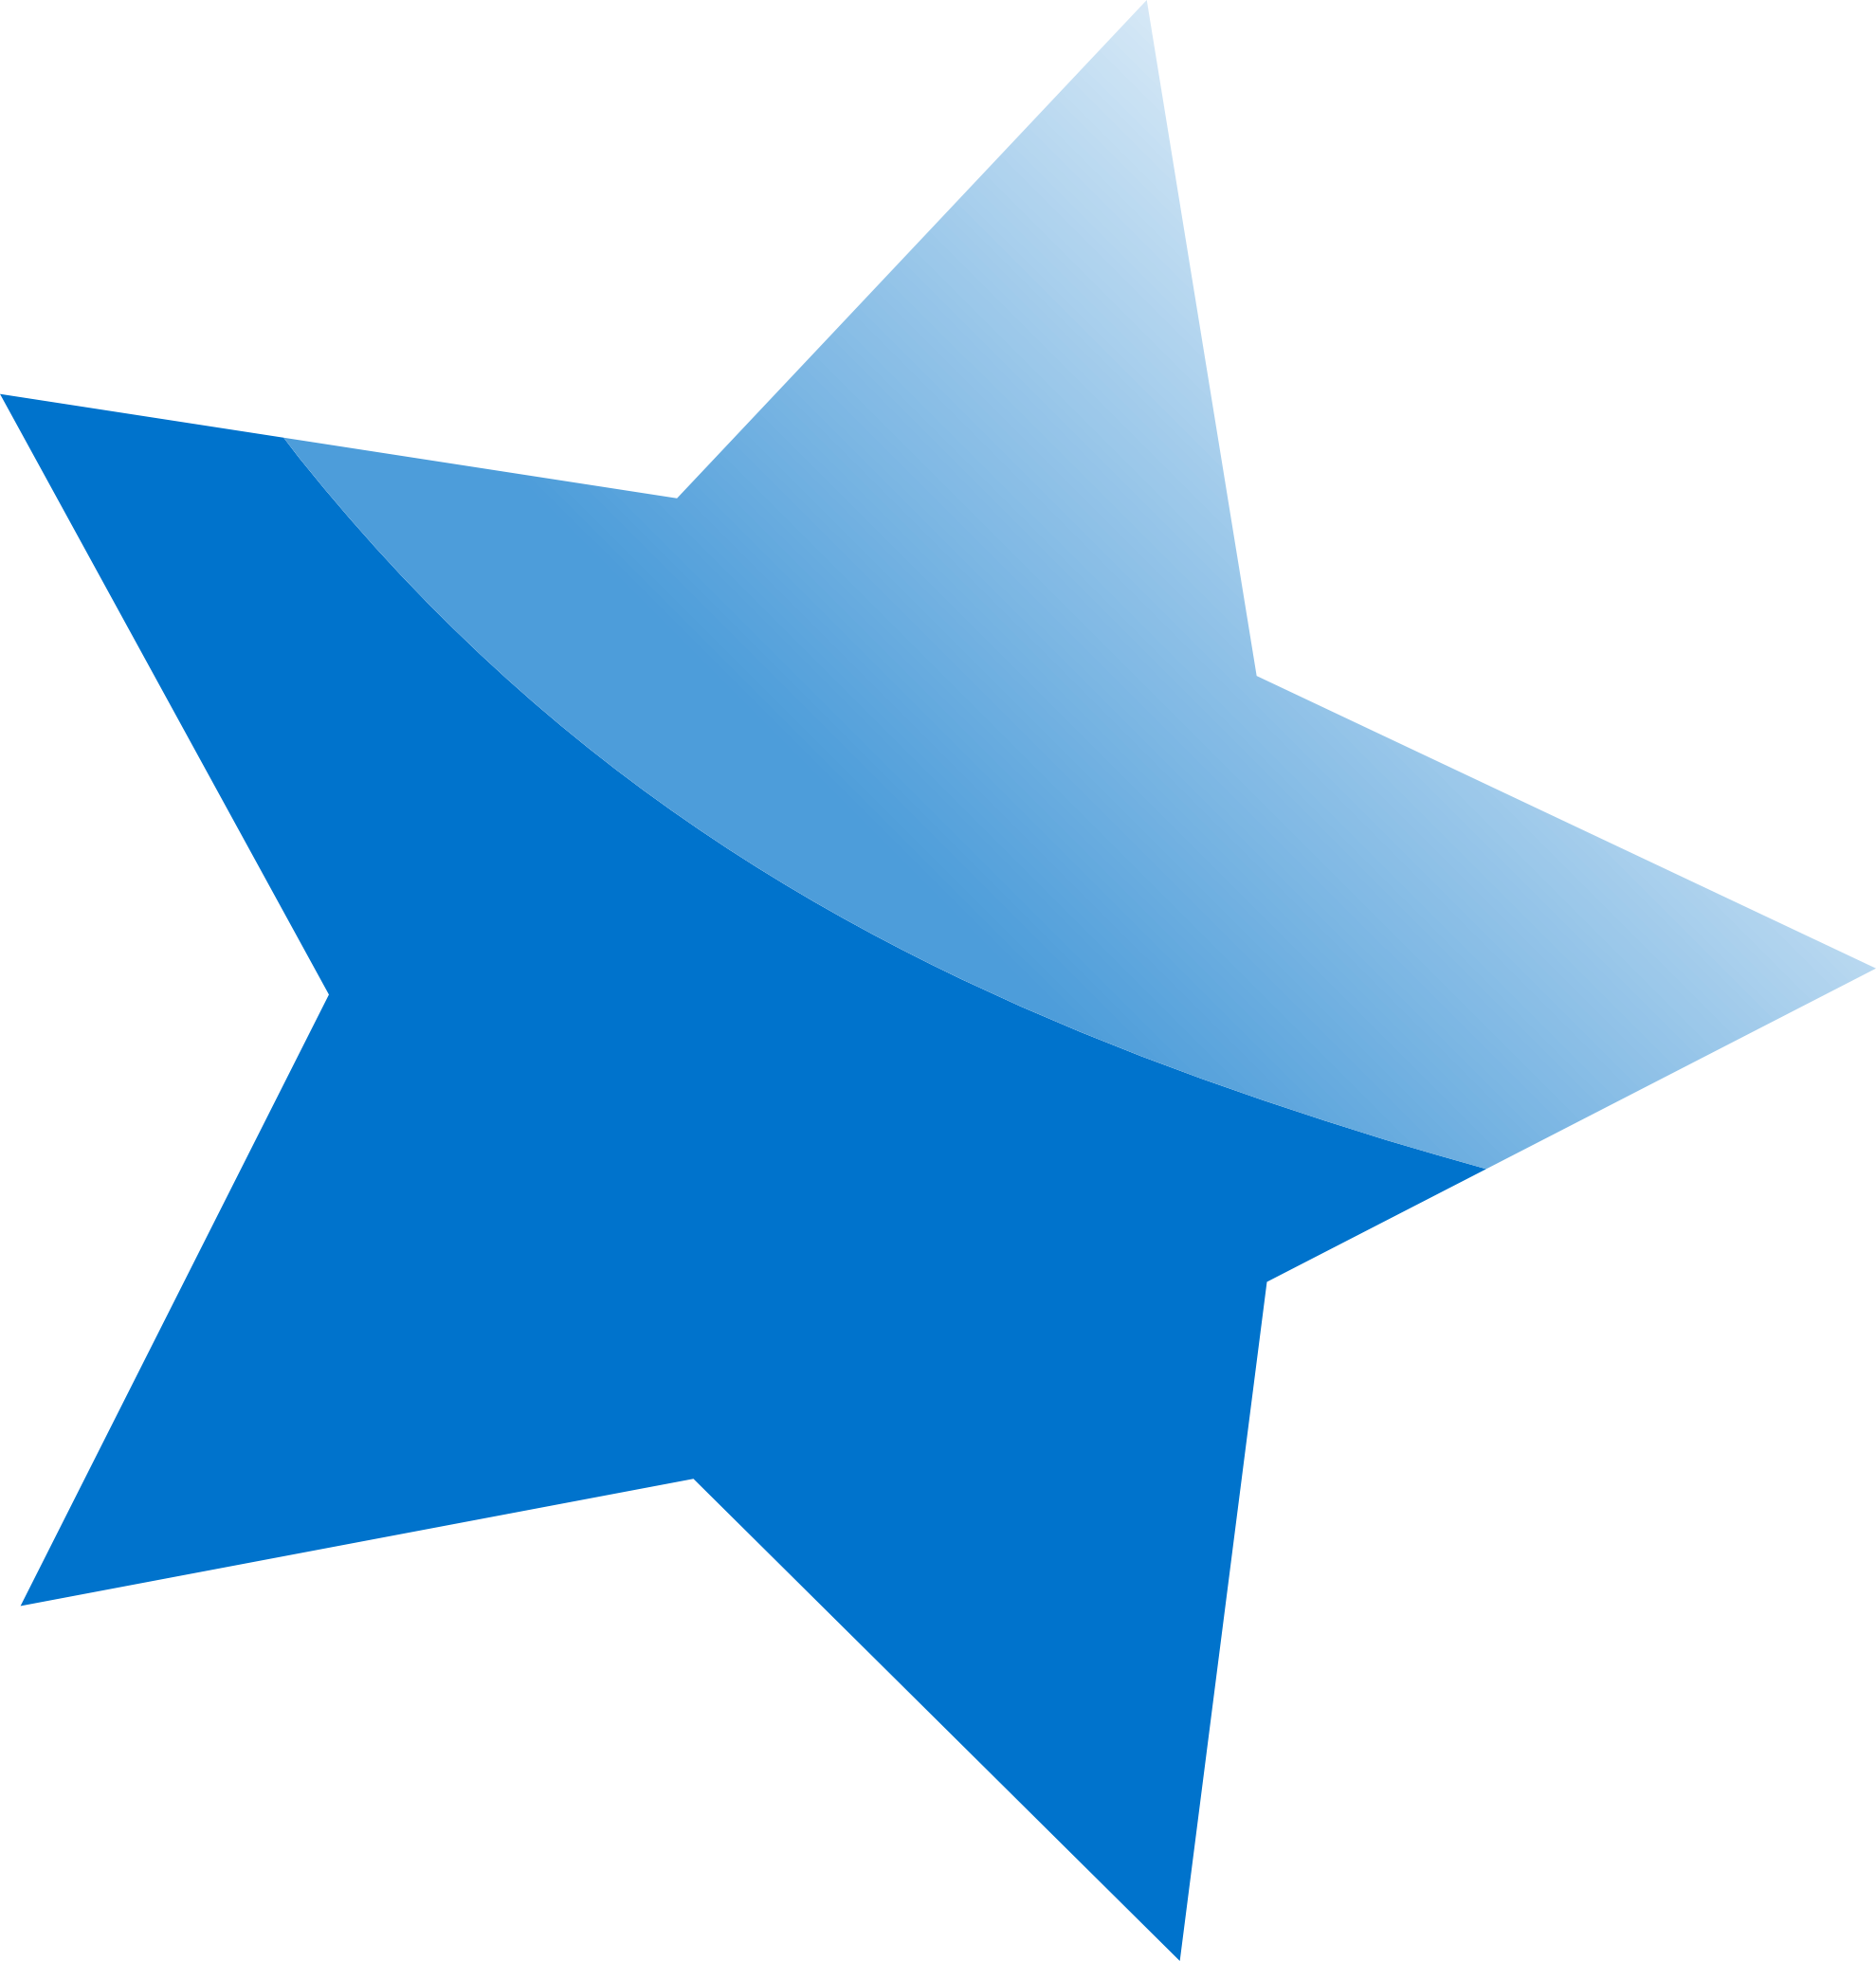 Star png transparent background. Blue image free download